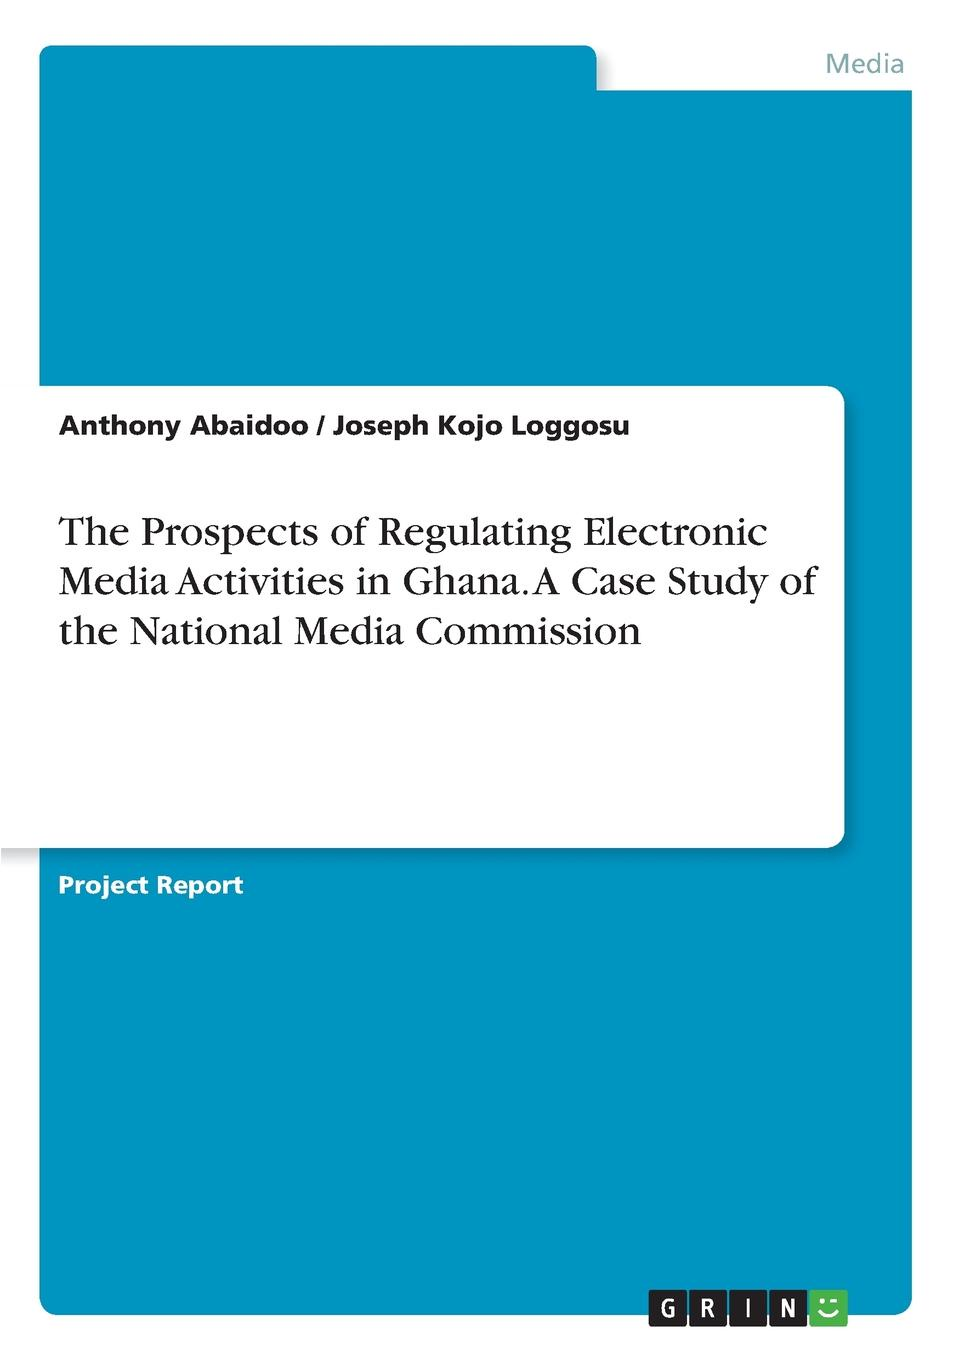 Anthony Abaidoo, Joseph Kojo Loggosu The Prospects of Regulating Electronic Media Activities in Ghana. A Case Study of the National Media Commission genetic diversity study a tool for harnessing okra germplasm in ghana